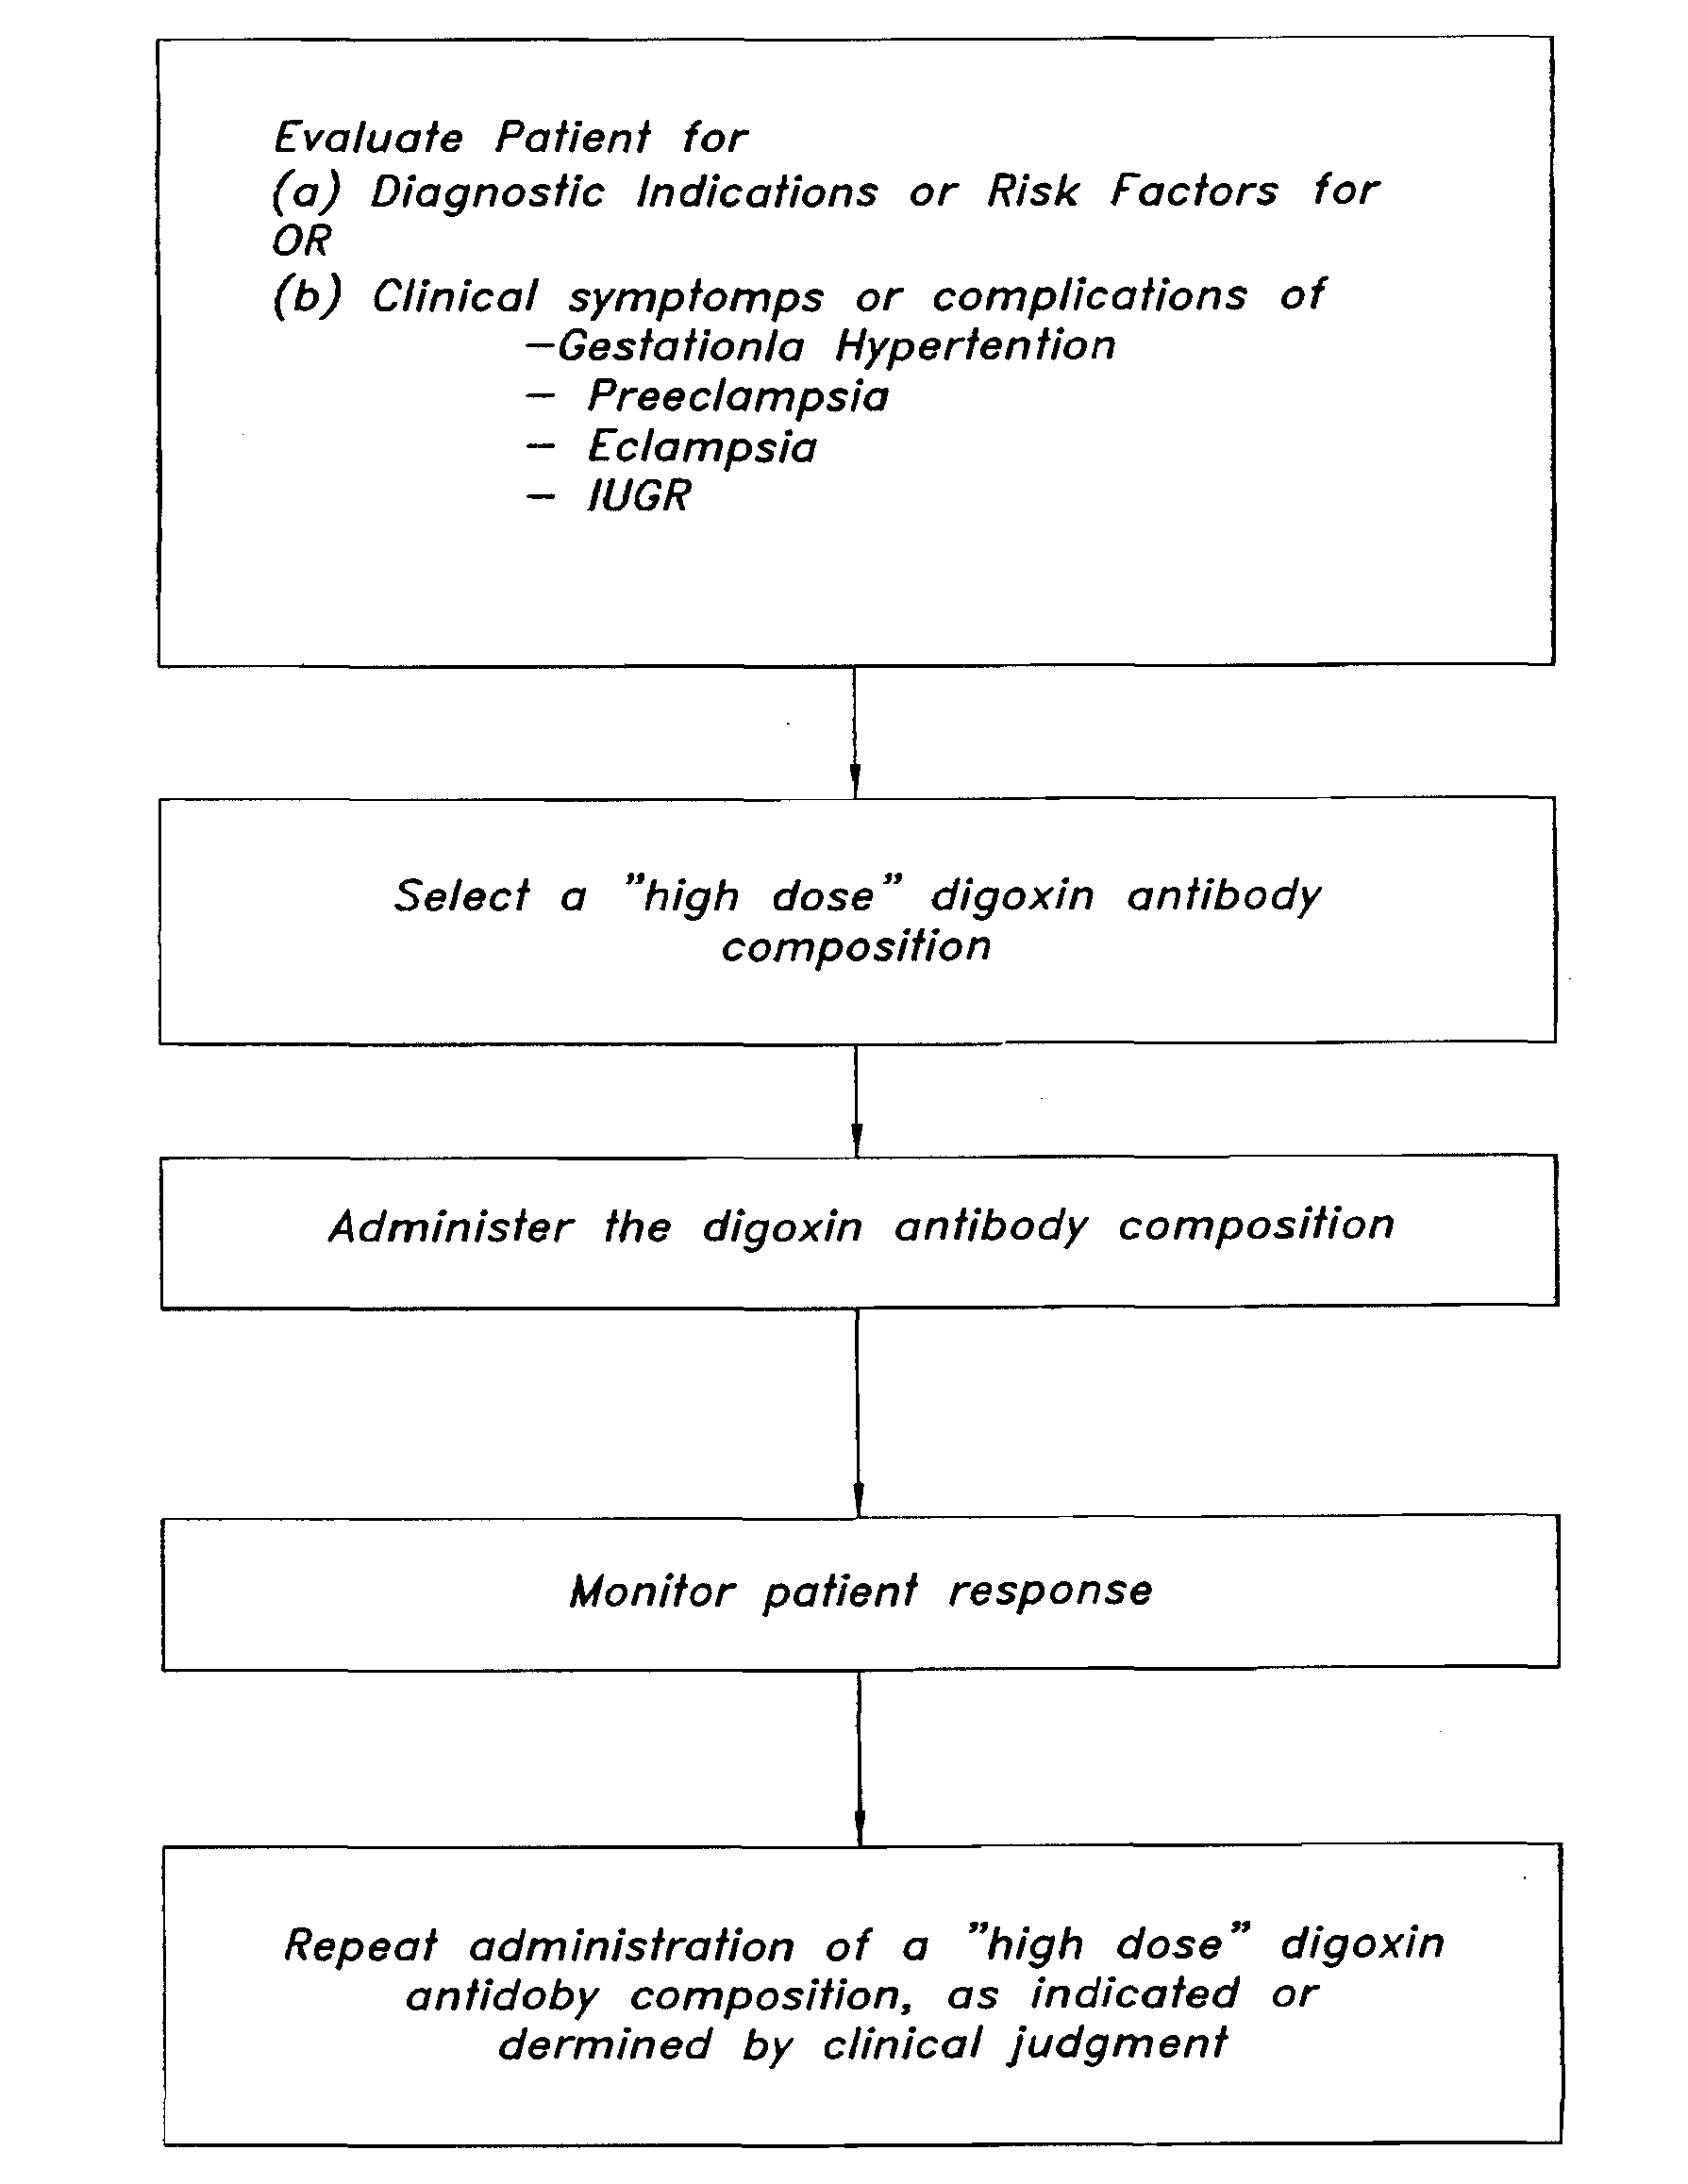 Digoxin 3.0.doc - Patent Drawing